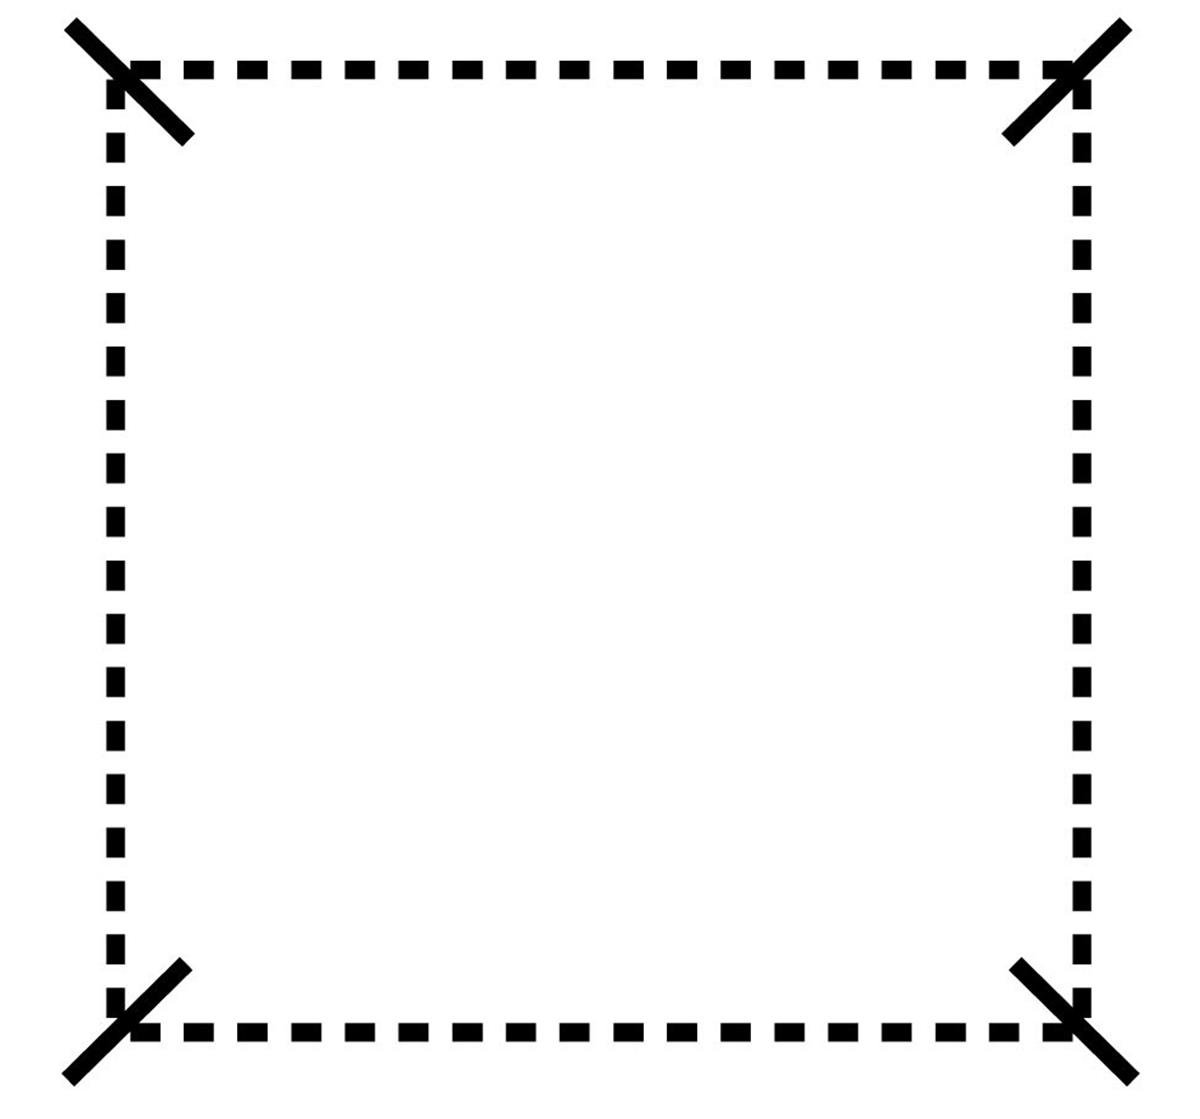 Displays2go Wire Grid Panel for Artwork, Iron Metal Construction, Powder Coated – Silver Finish (AD4PNLS) by Displays2go (Image #6)